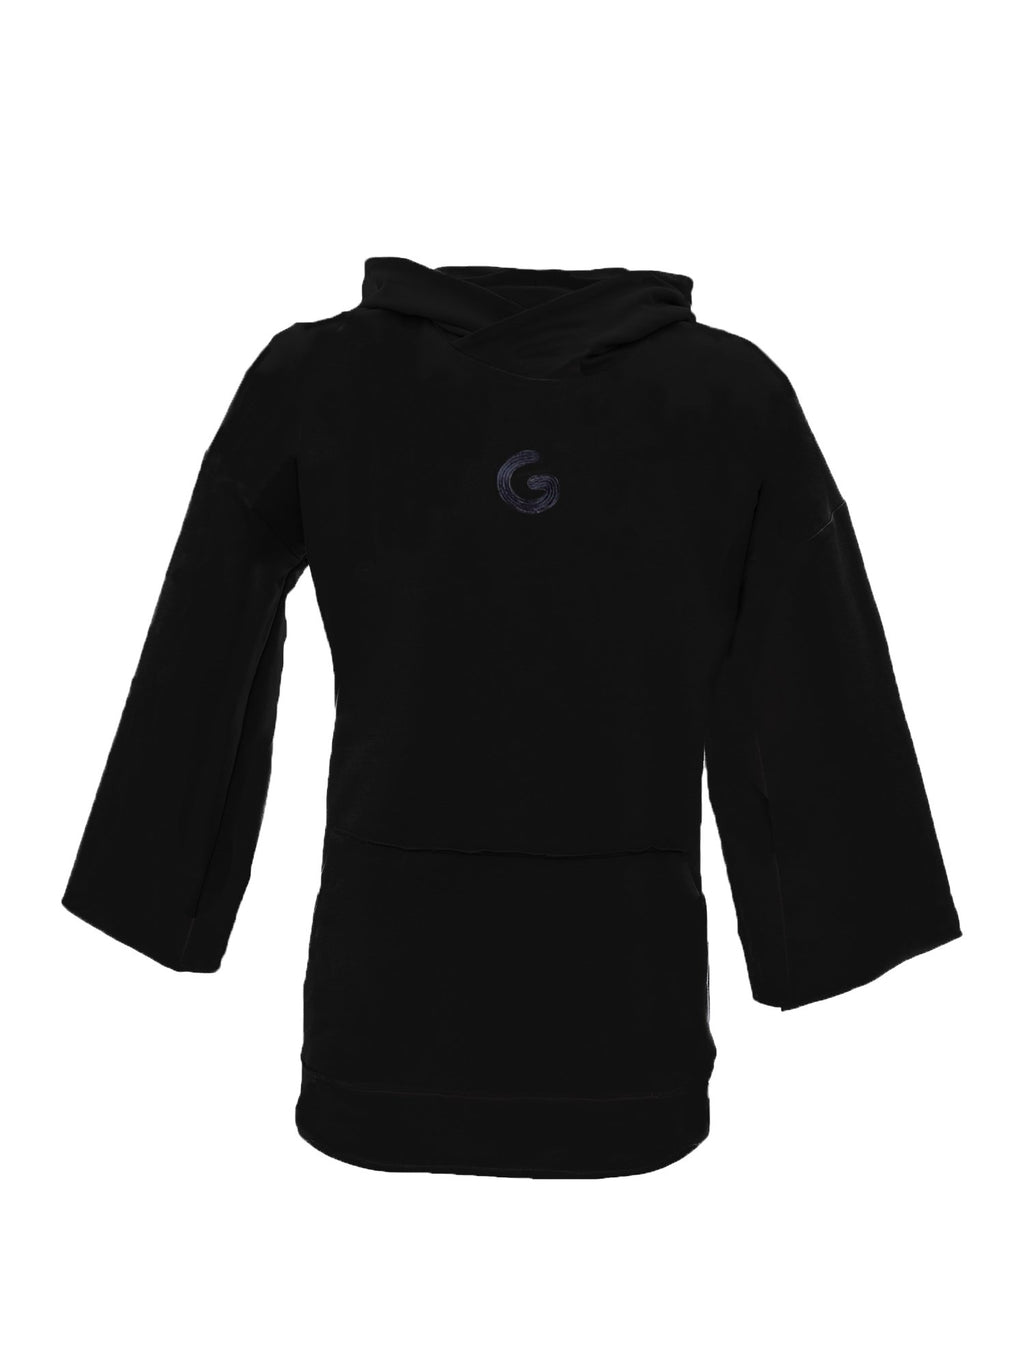 TheG Essential 3/4 Hoody // black